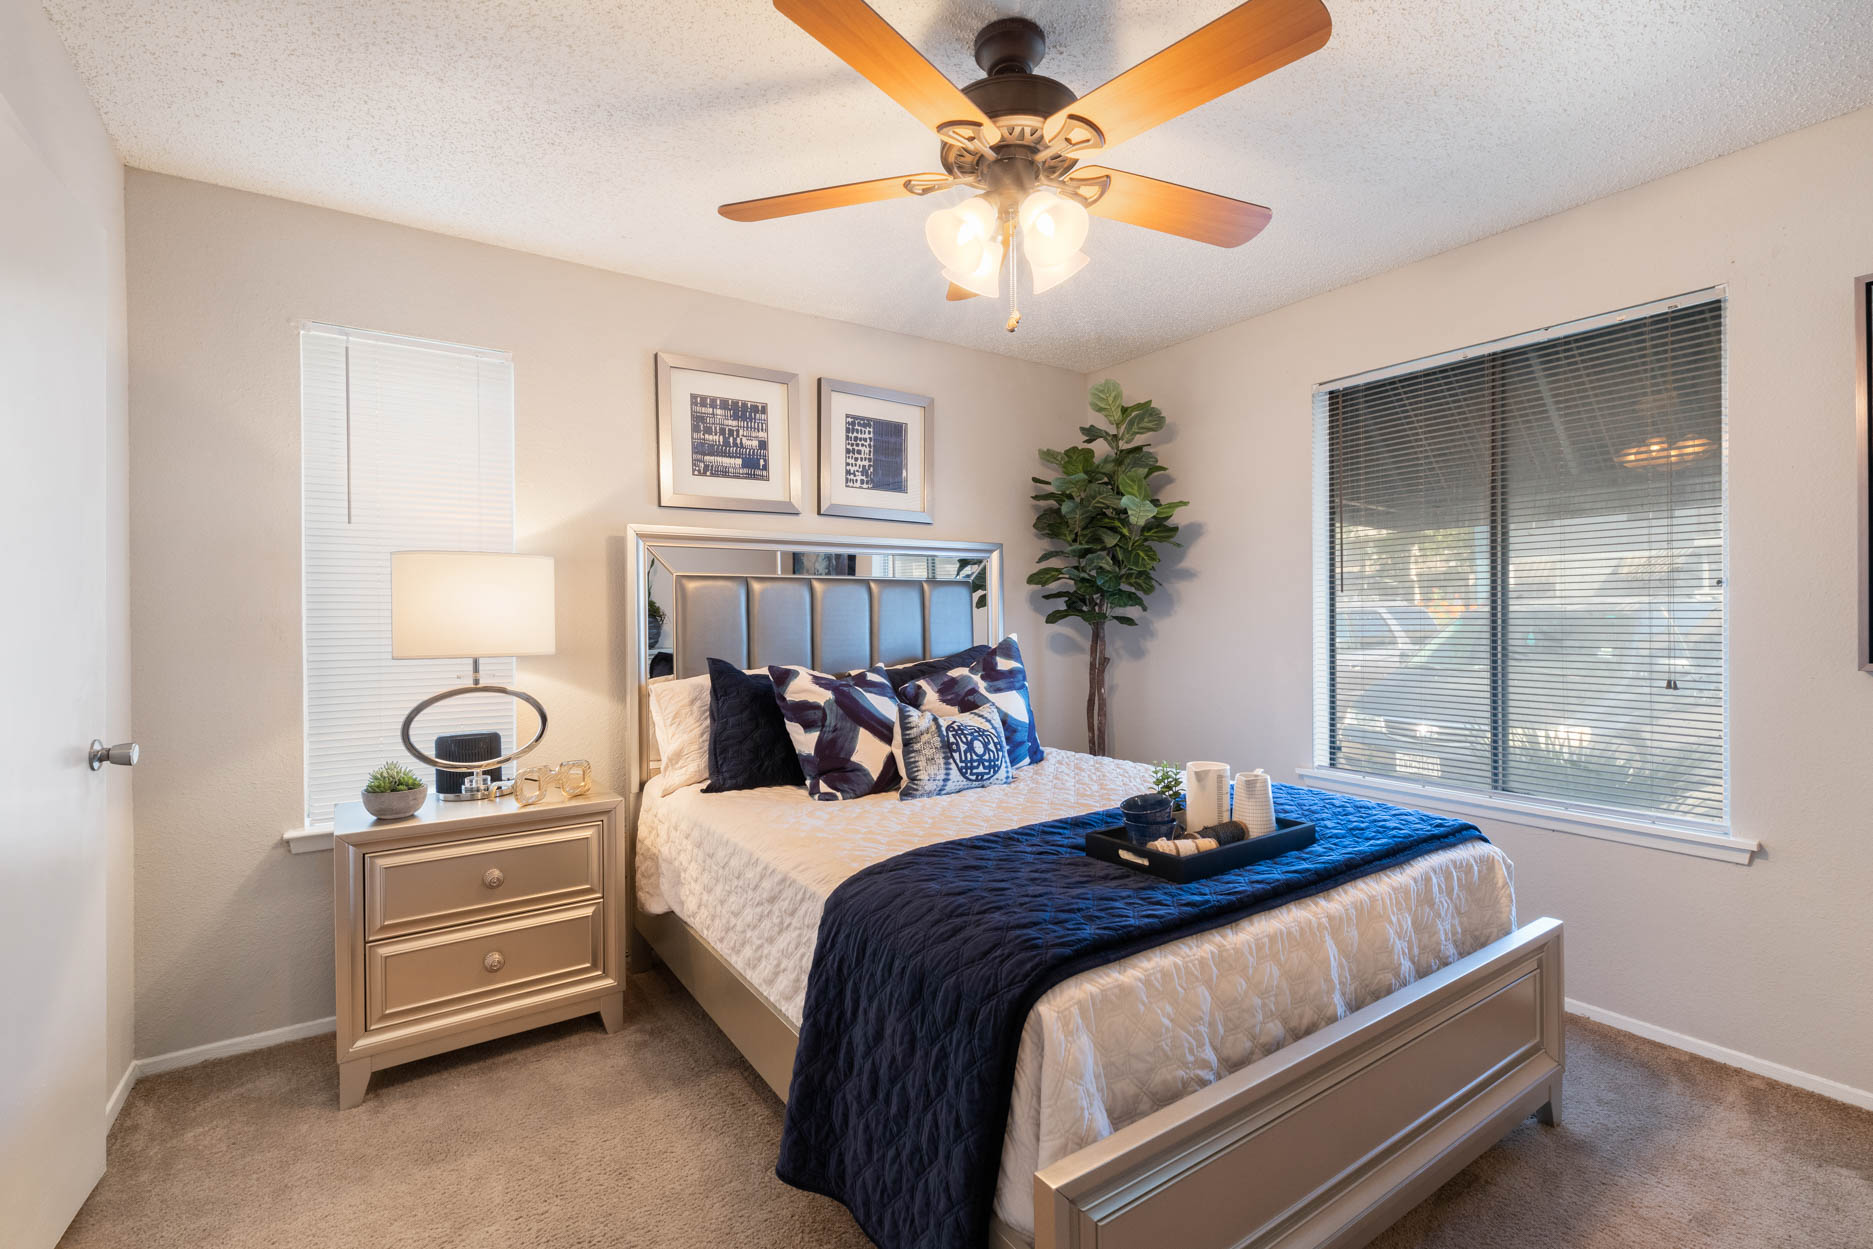 1-Bedroom & 2-Bedroom Apartments Available at Aubry Hills Apartments in Austin, TX